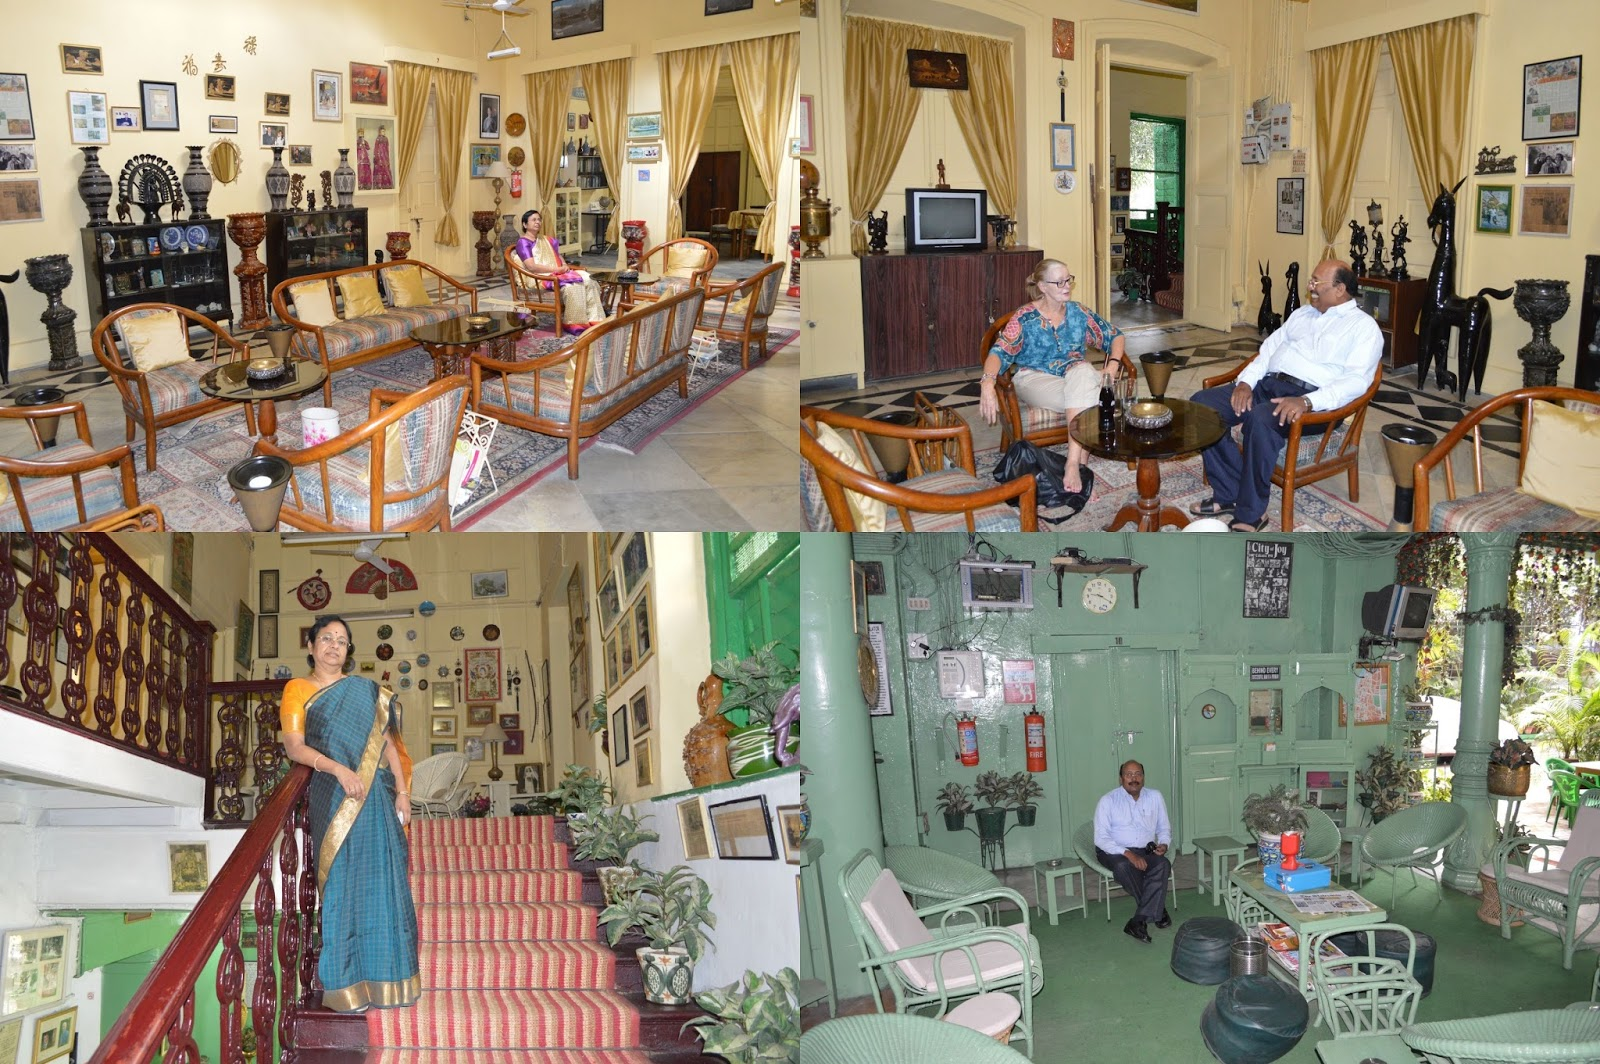 In My Previous Blog Post I Mentioned That We Were At Kolkata Last Week On A Holiday And Two Famous Hotels Floatel Fairlawn